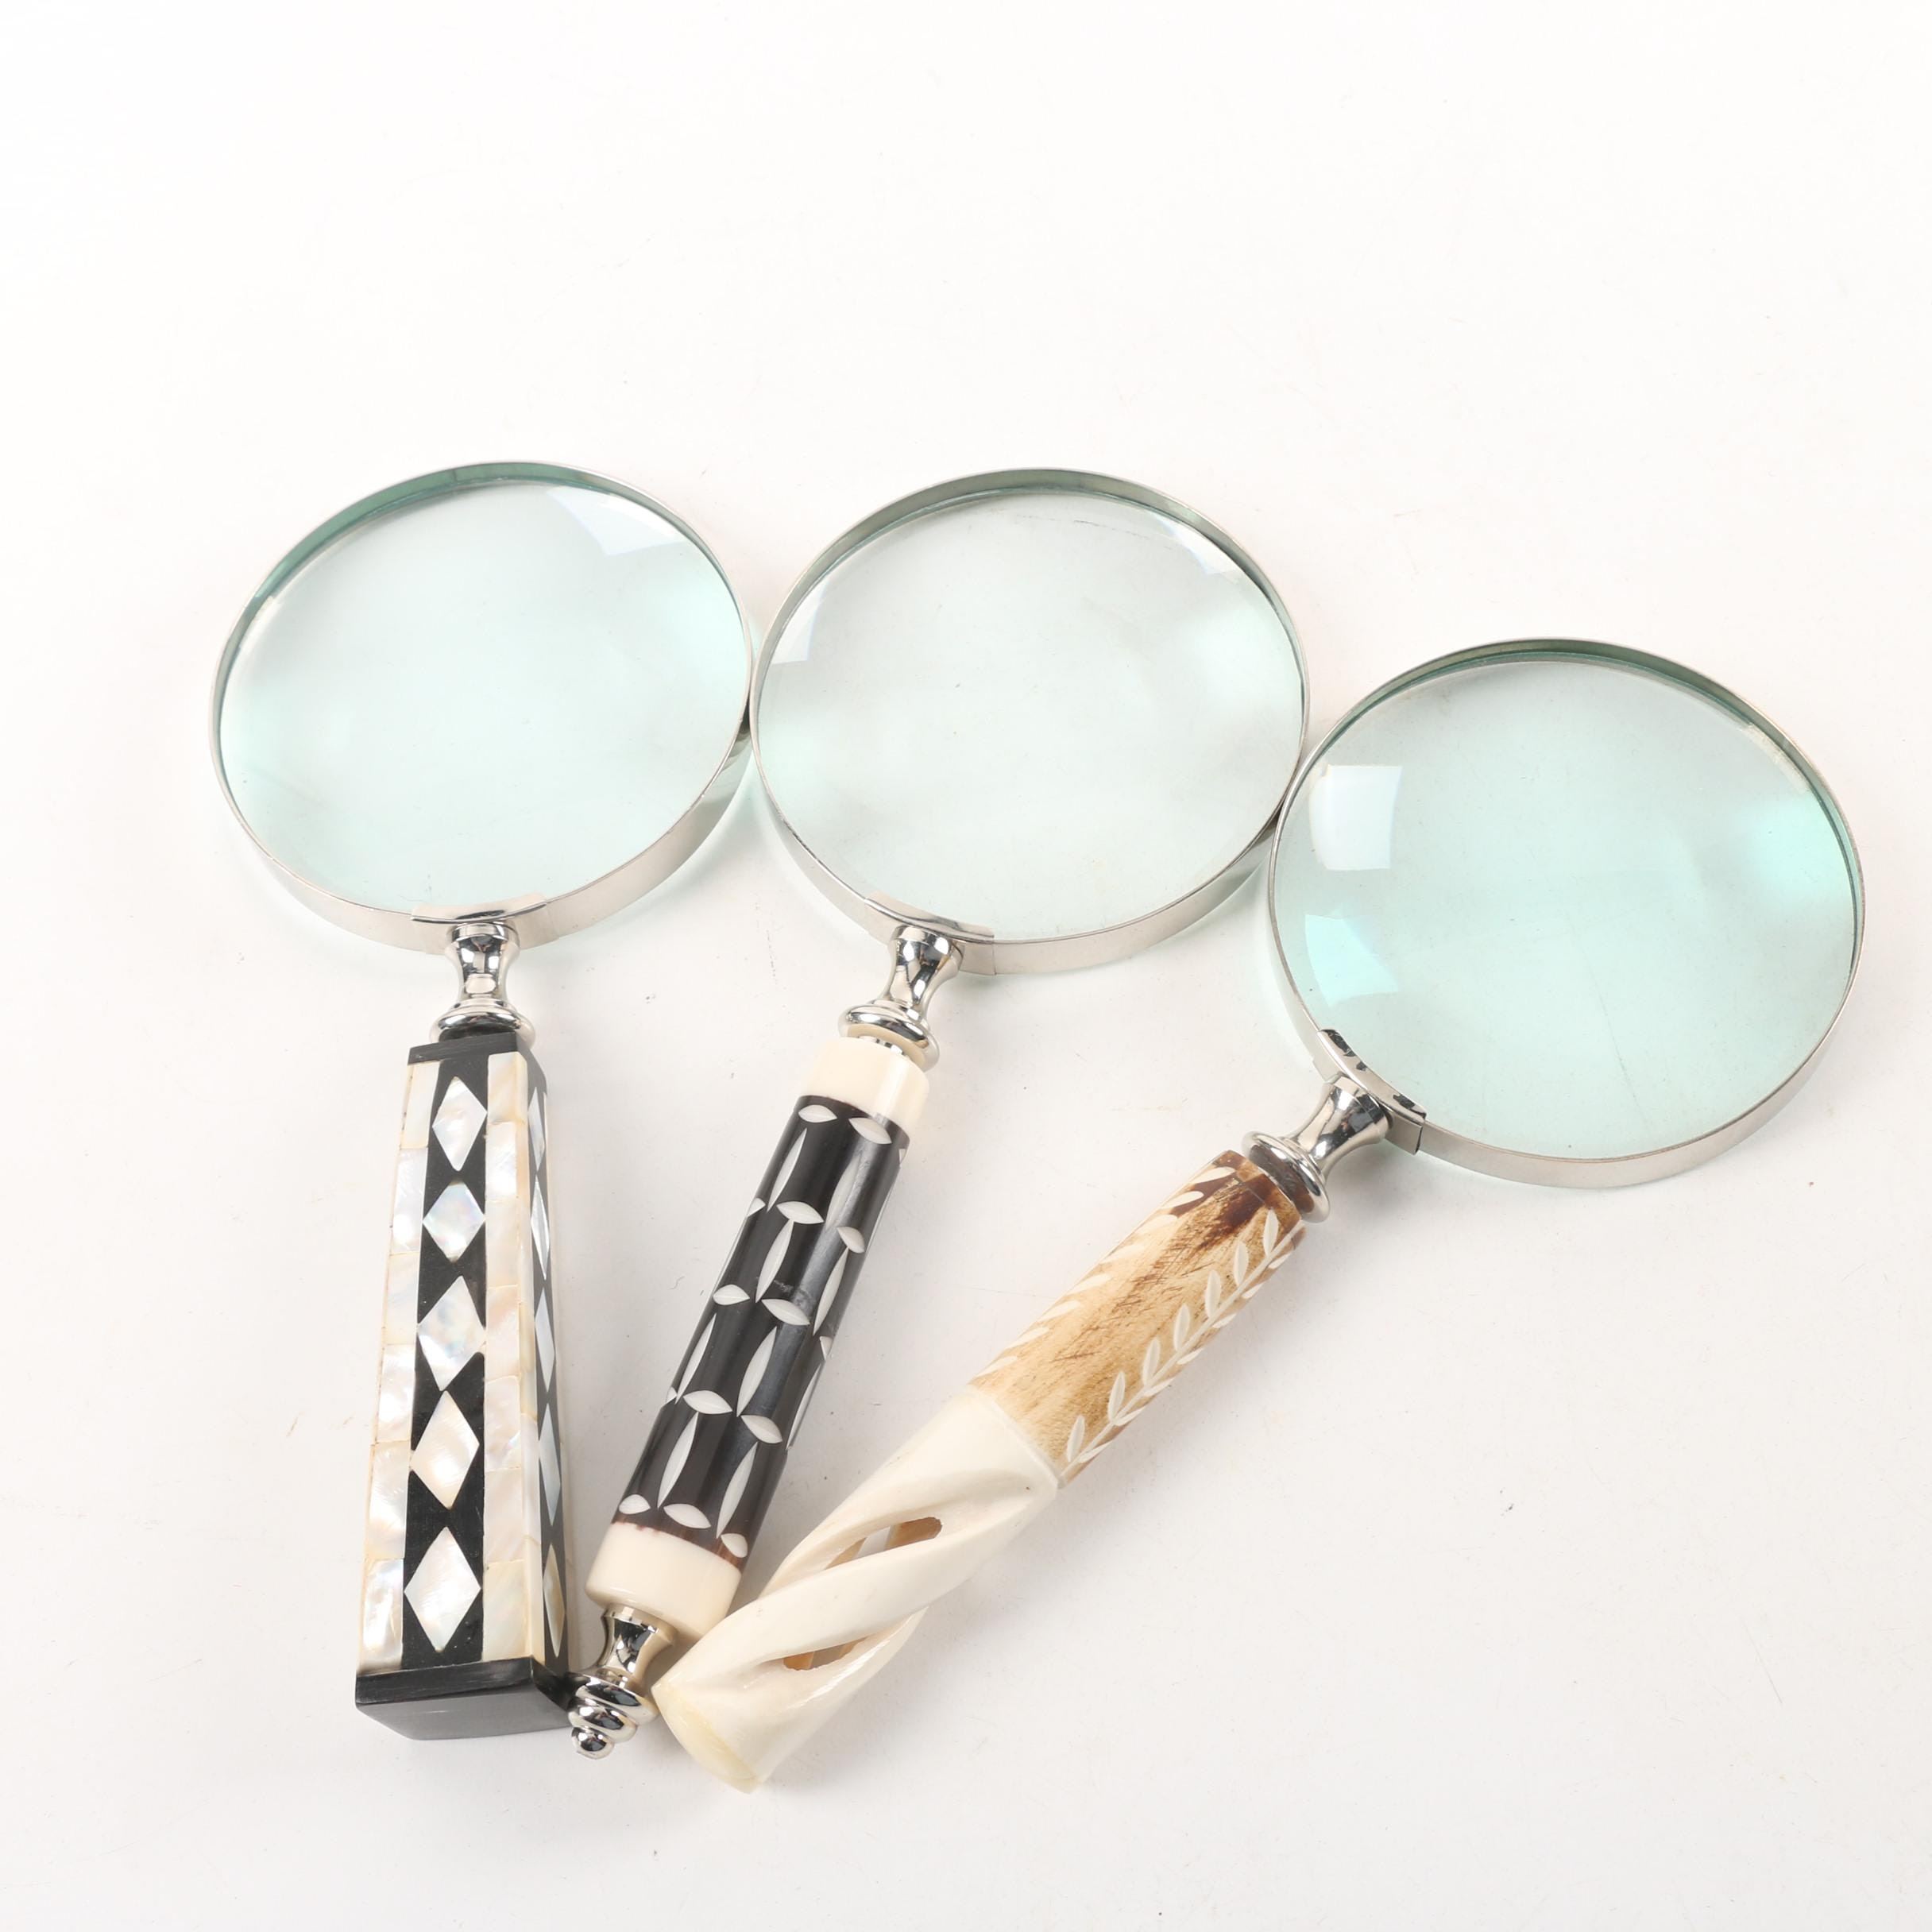 Magnifying Glasses with Horn and Mother of Pearl Inlay